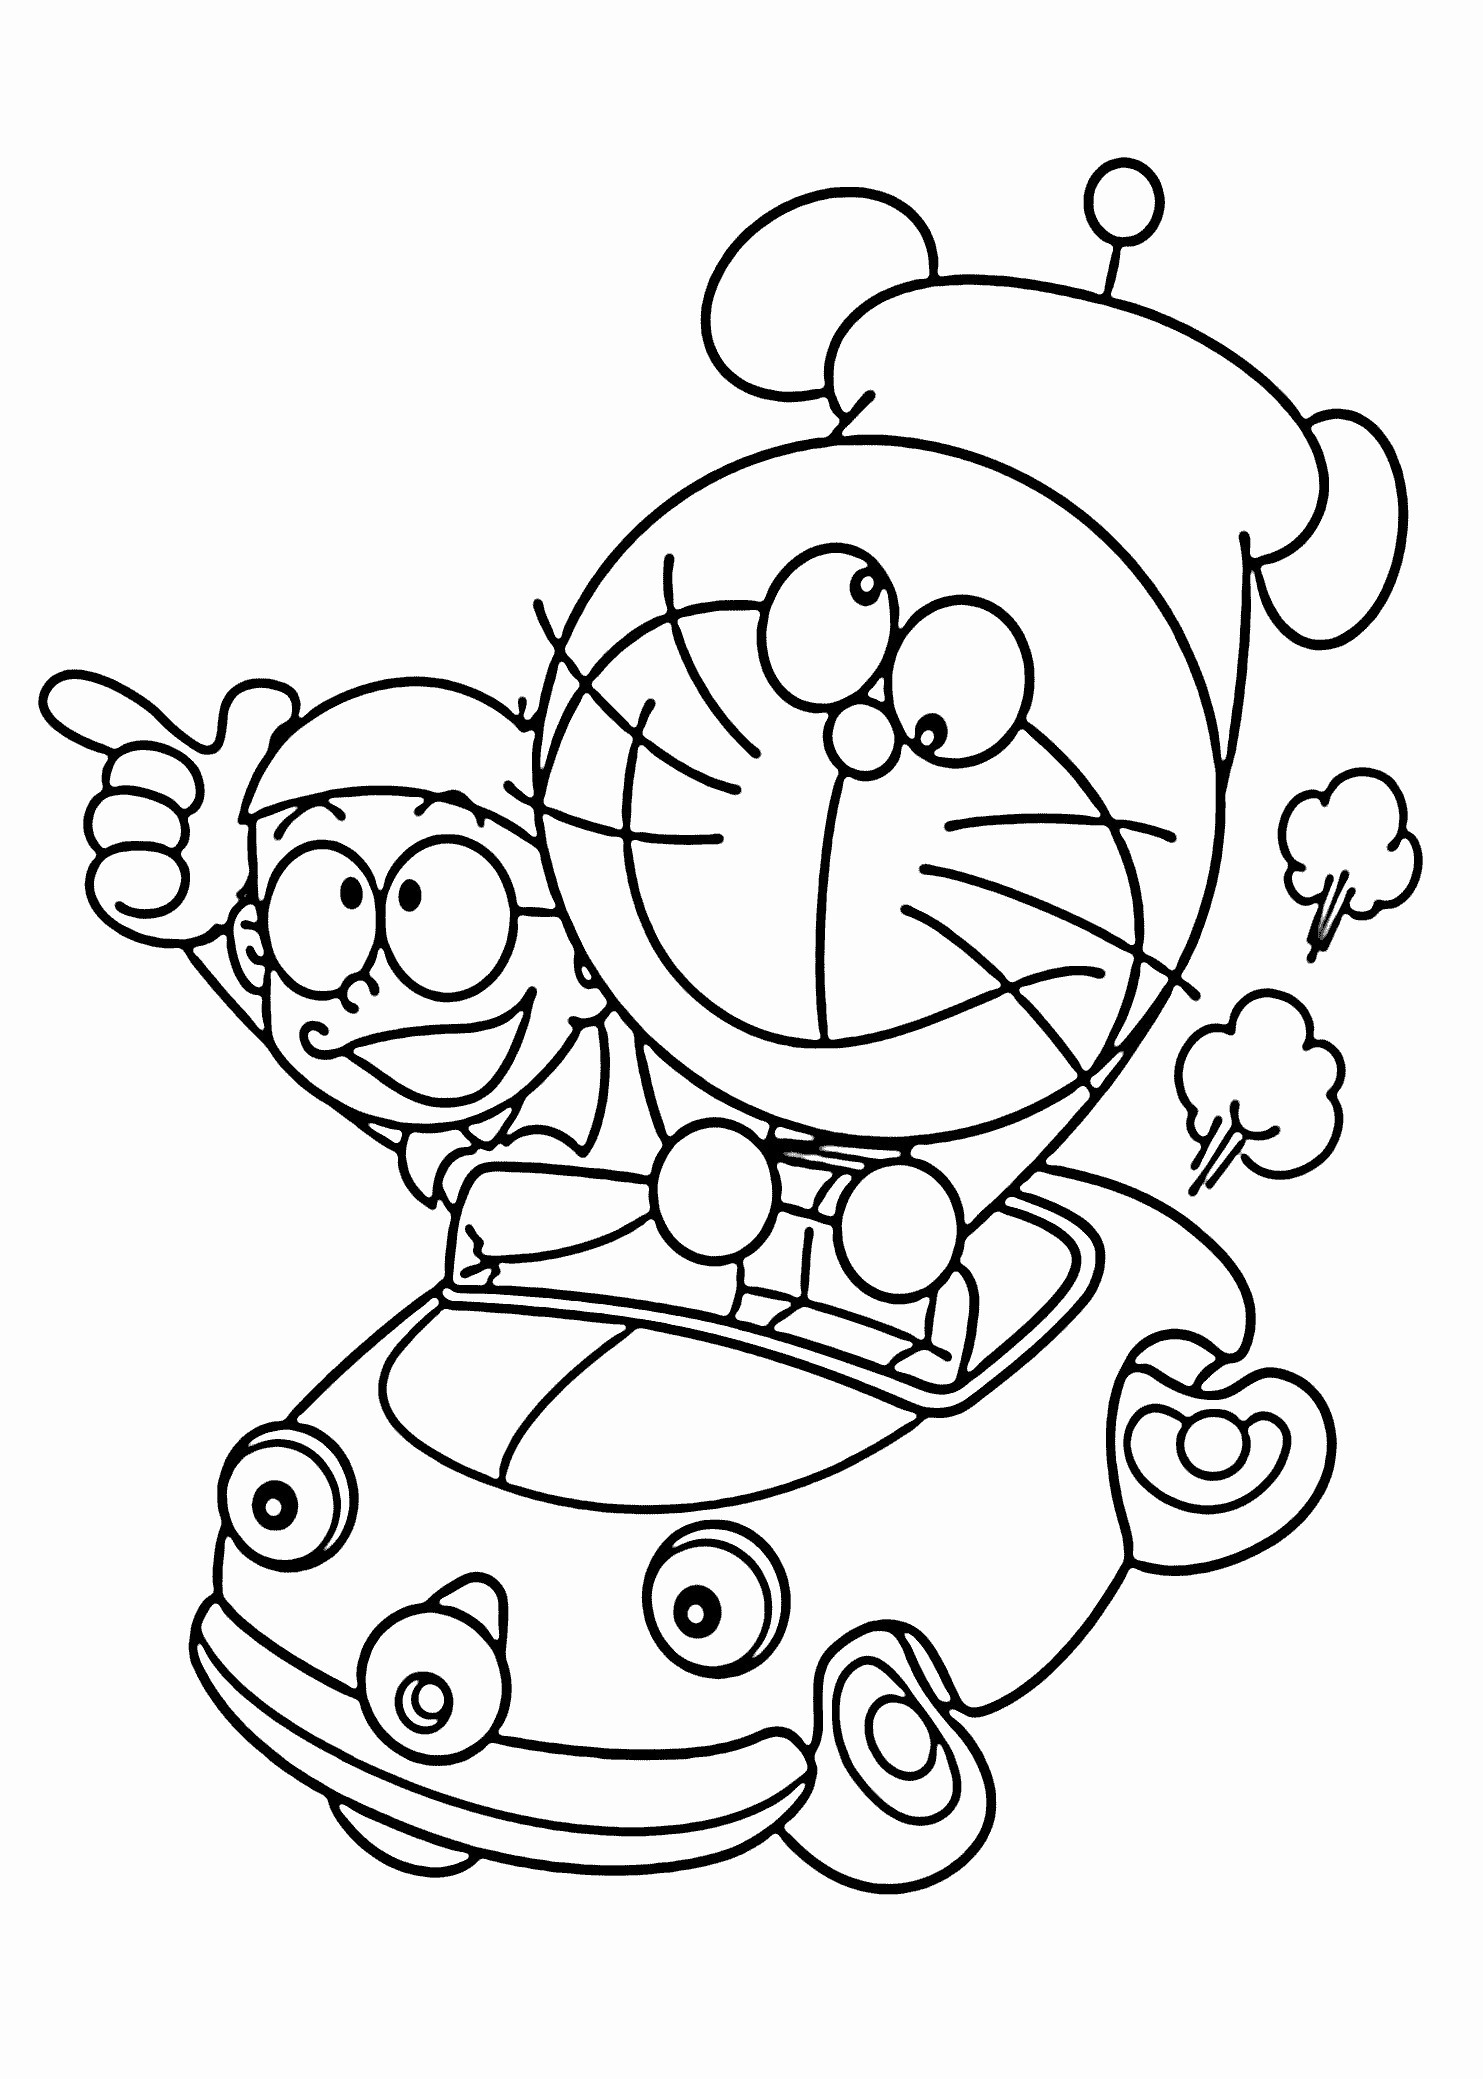 Coloring Pages Minion  to Print 3b - Free For kids